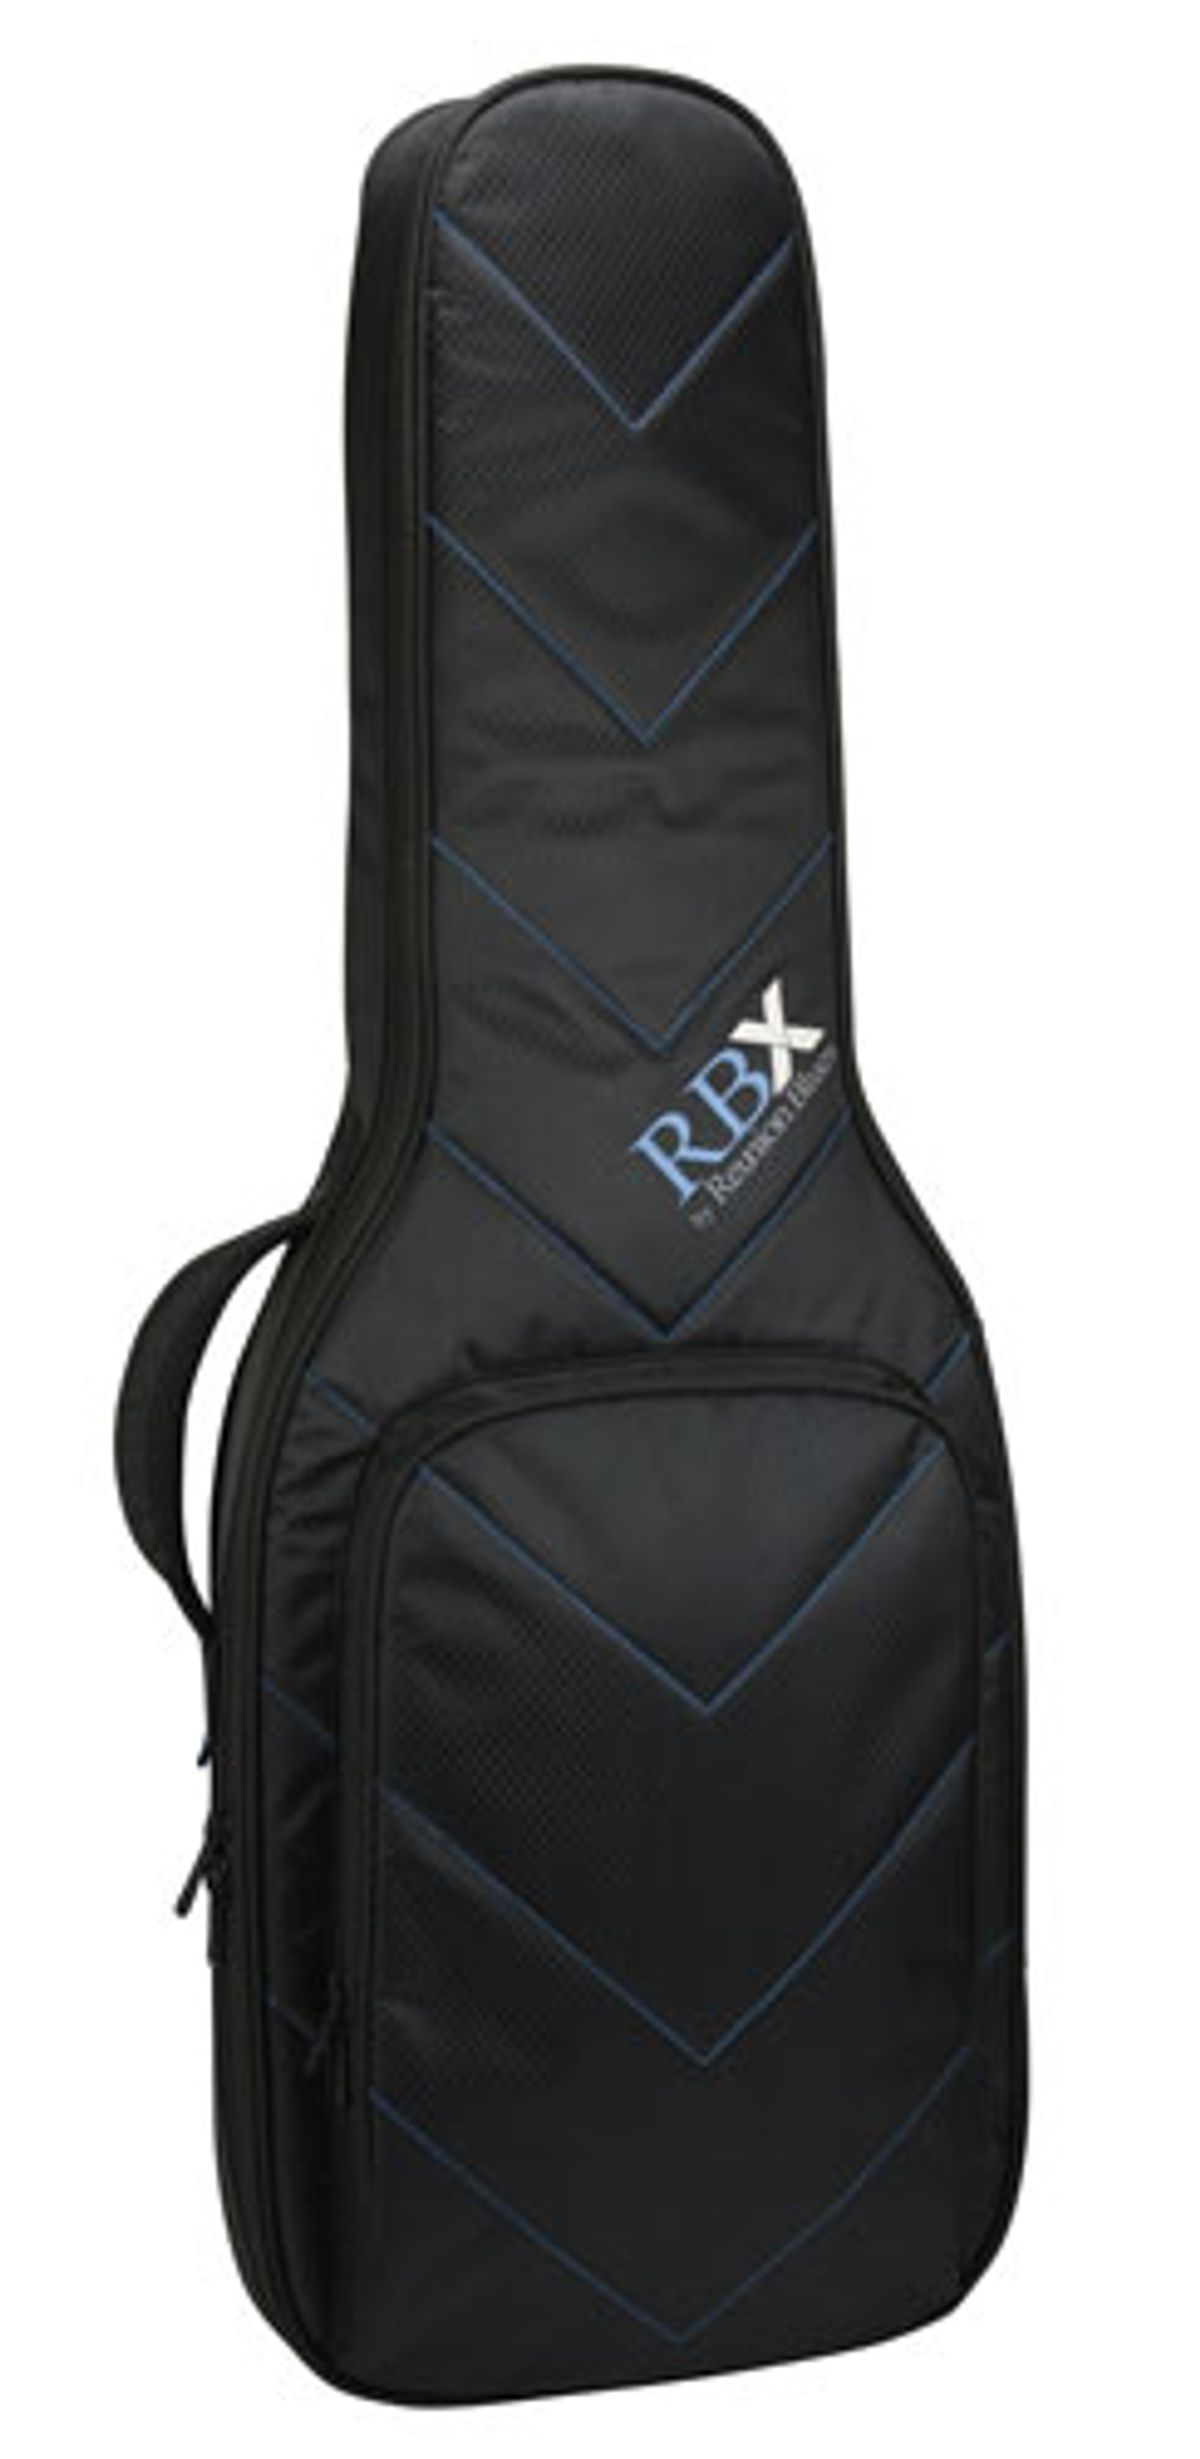 Reunion Blues Releases RBX Series of Gig Bags